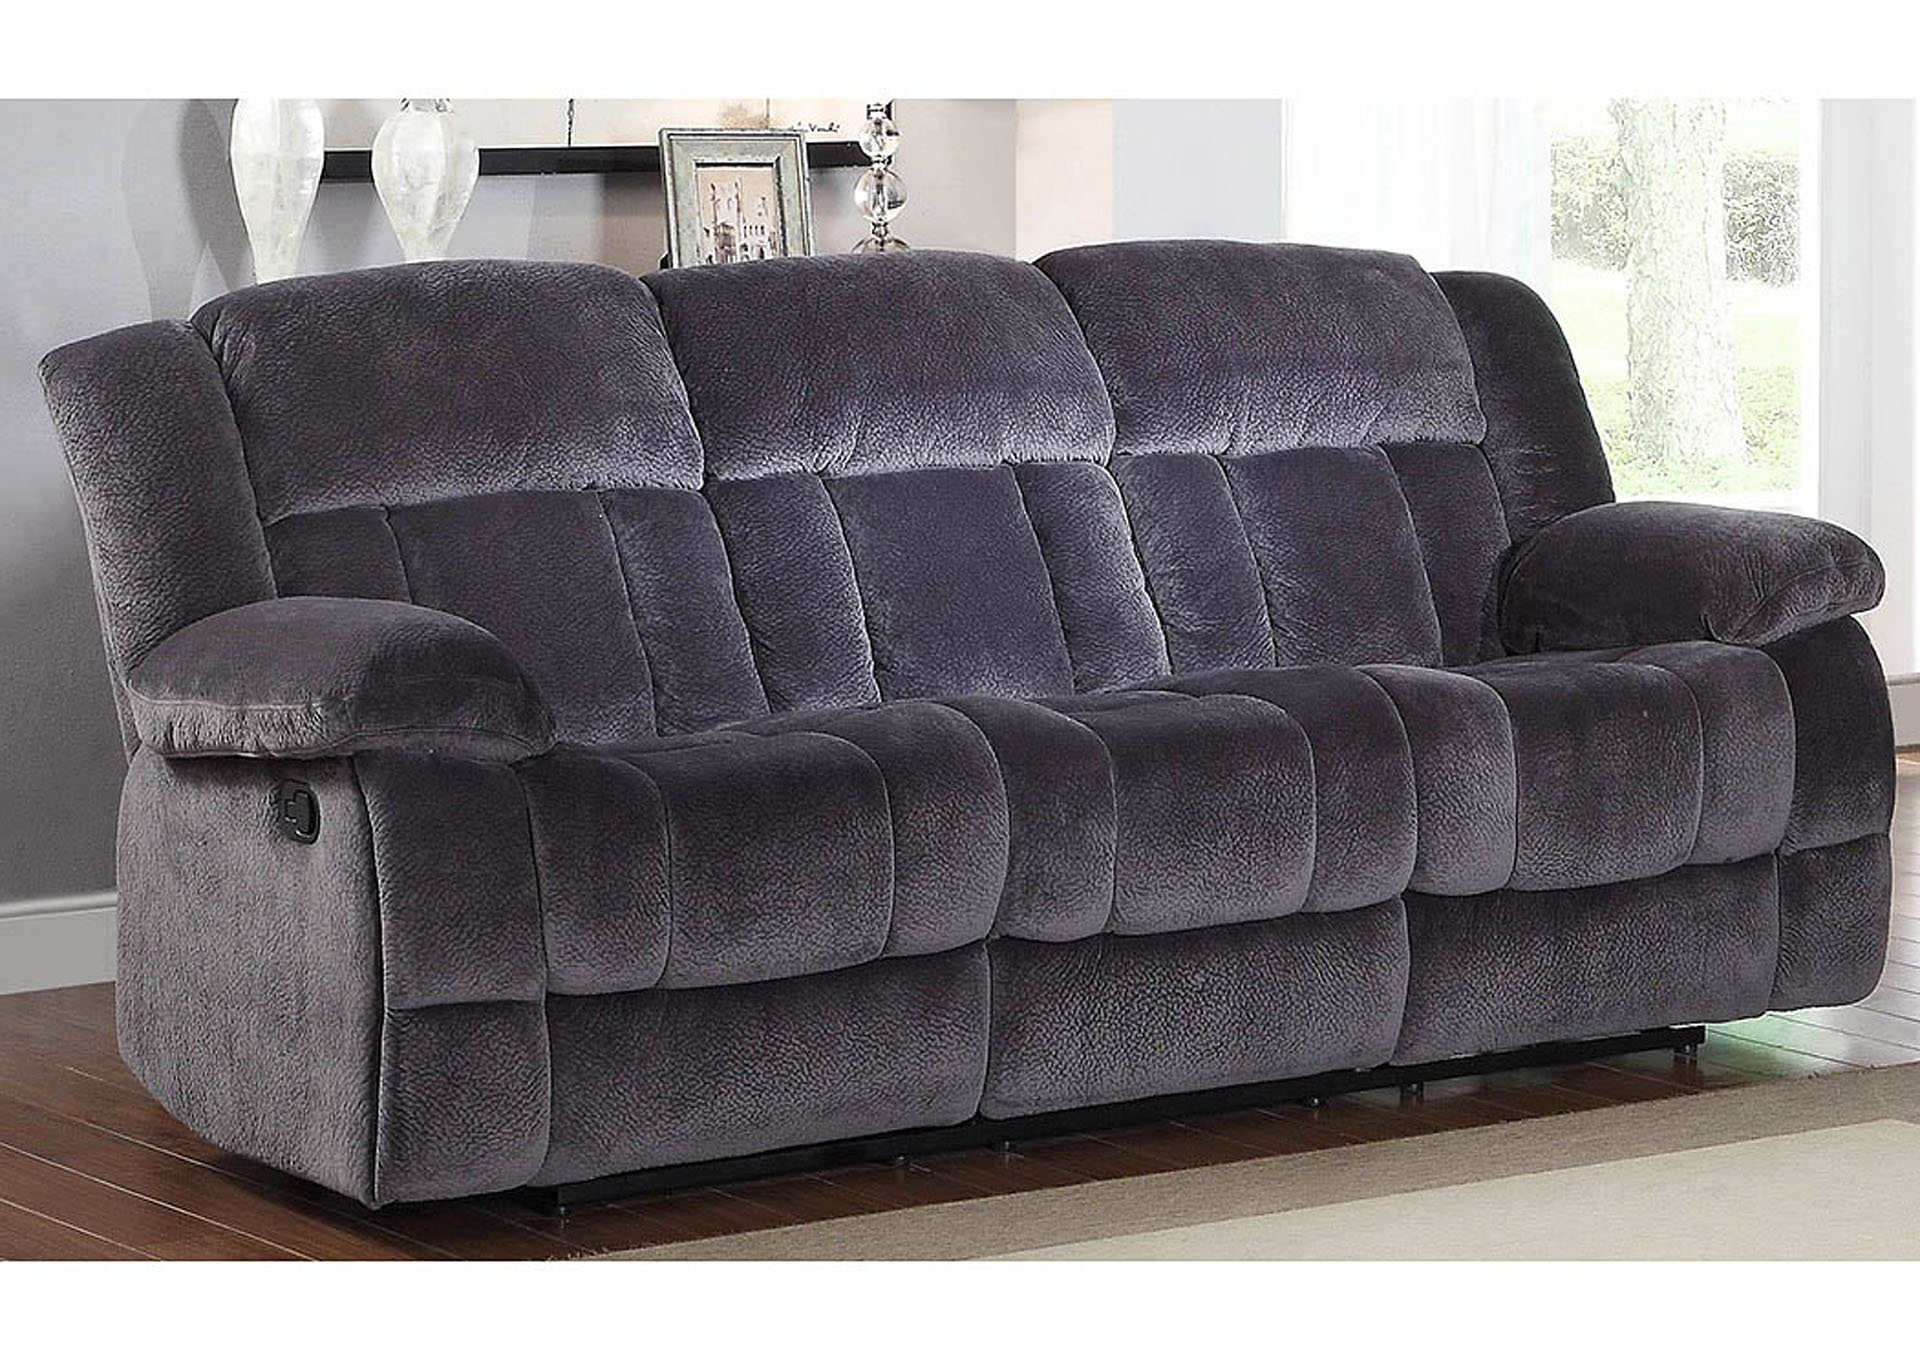 Laurelton Charcoal Double Reclining Sofa,Homelegance